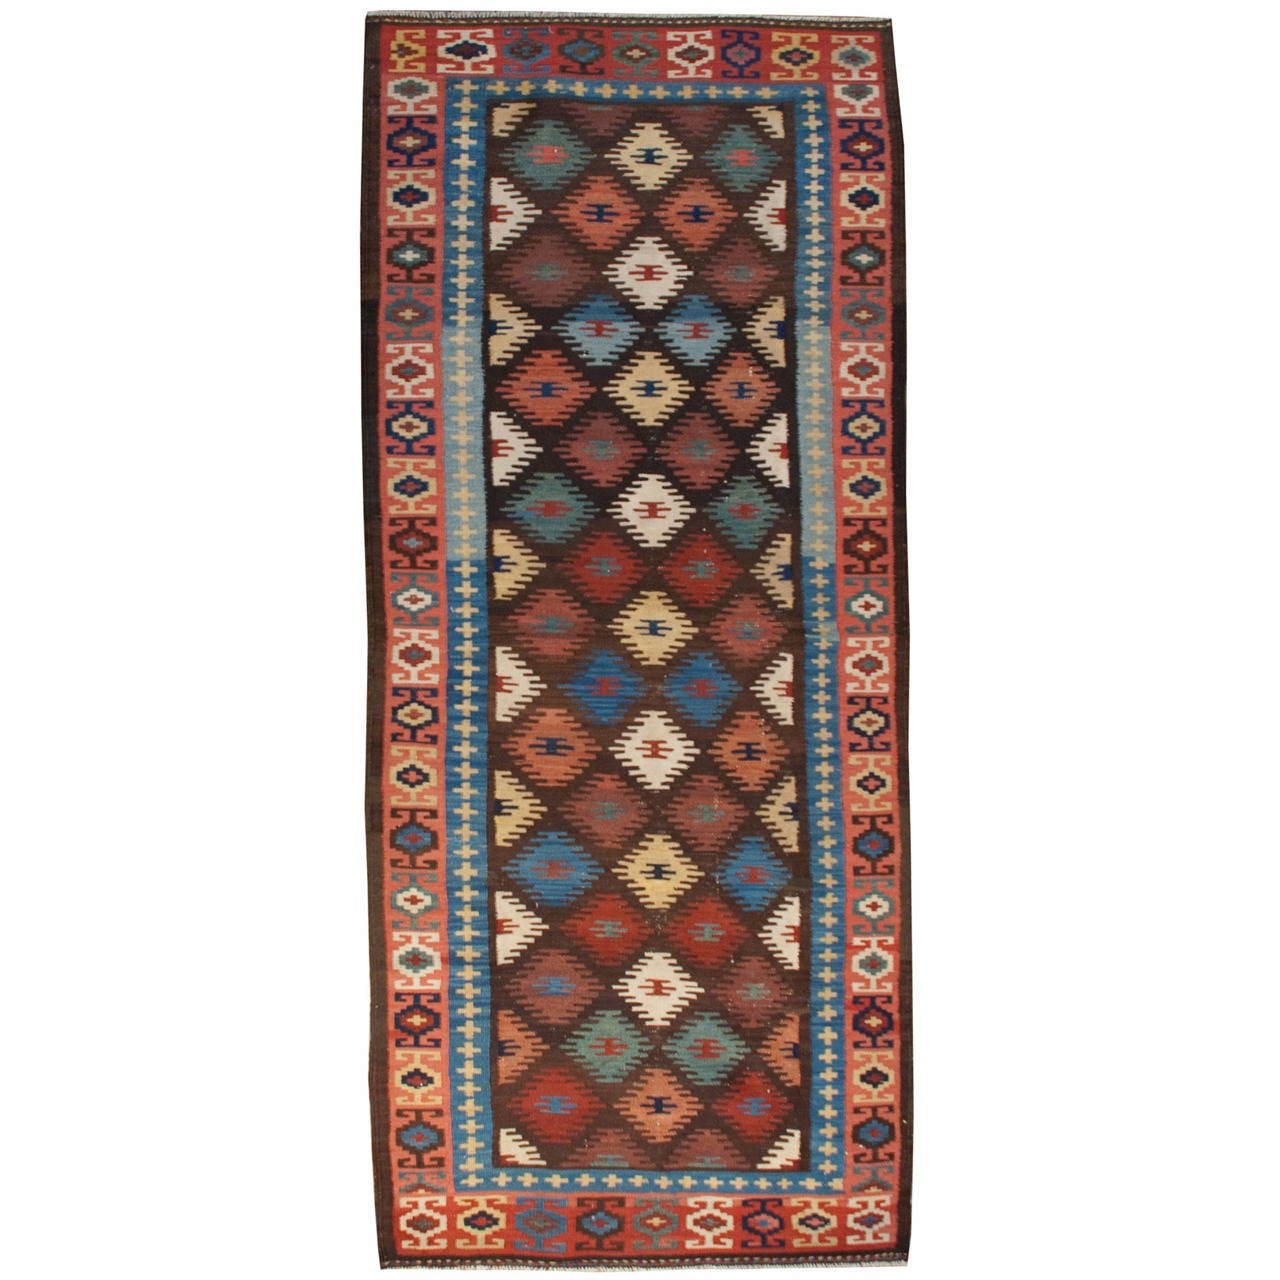 Early 20th Century Harseen Kilim Runner